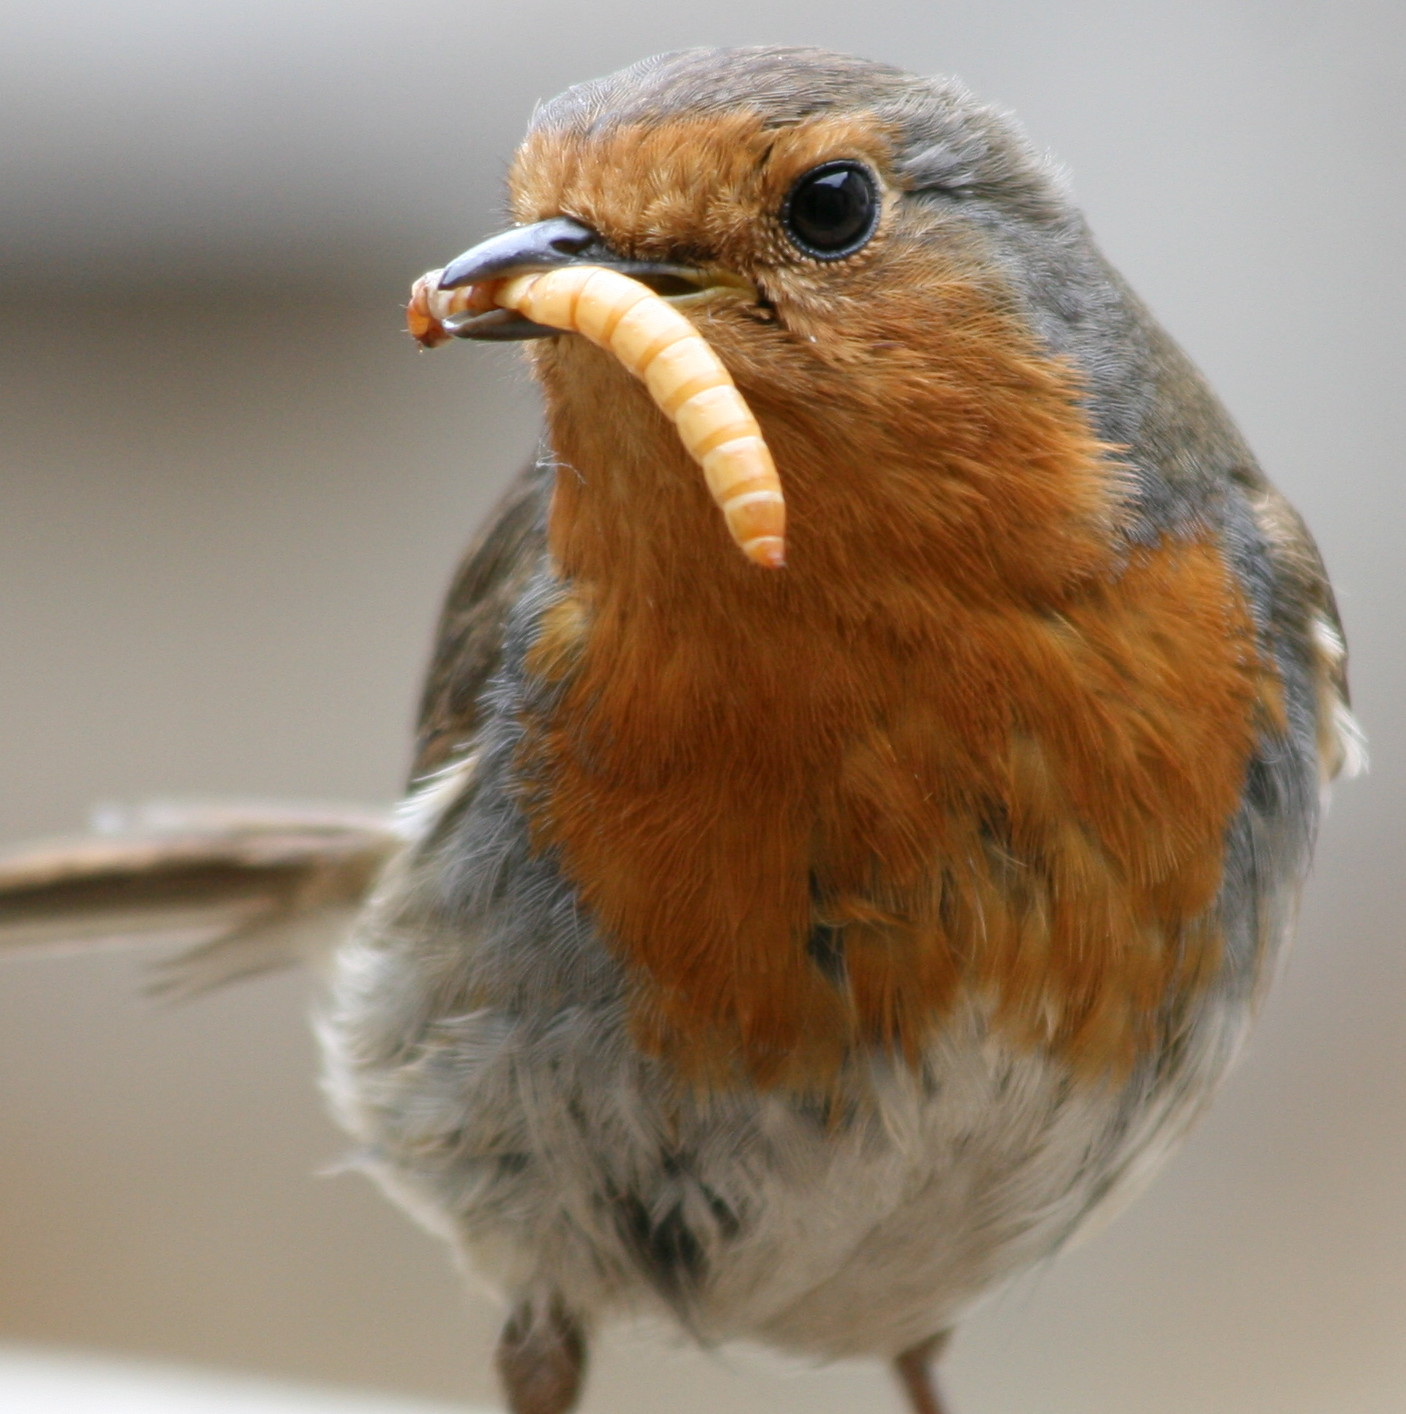 A robin eating a live mealworm